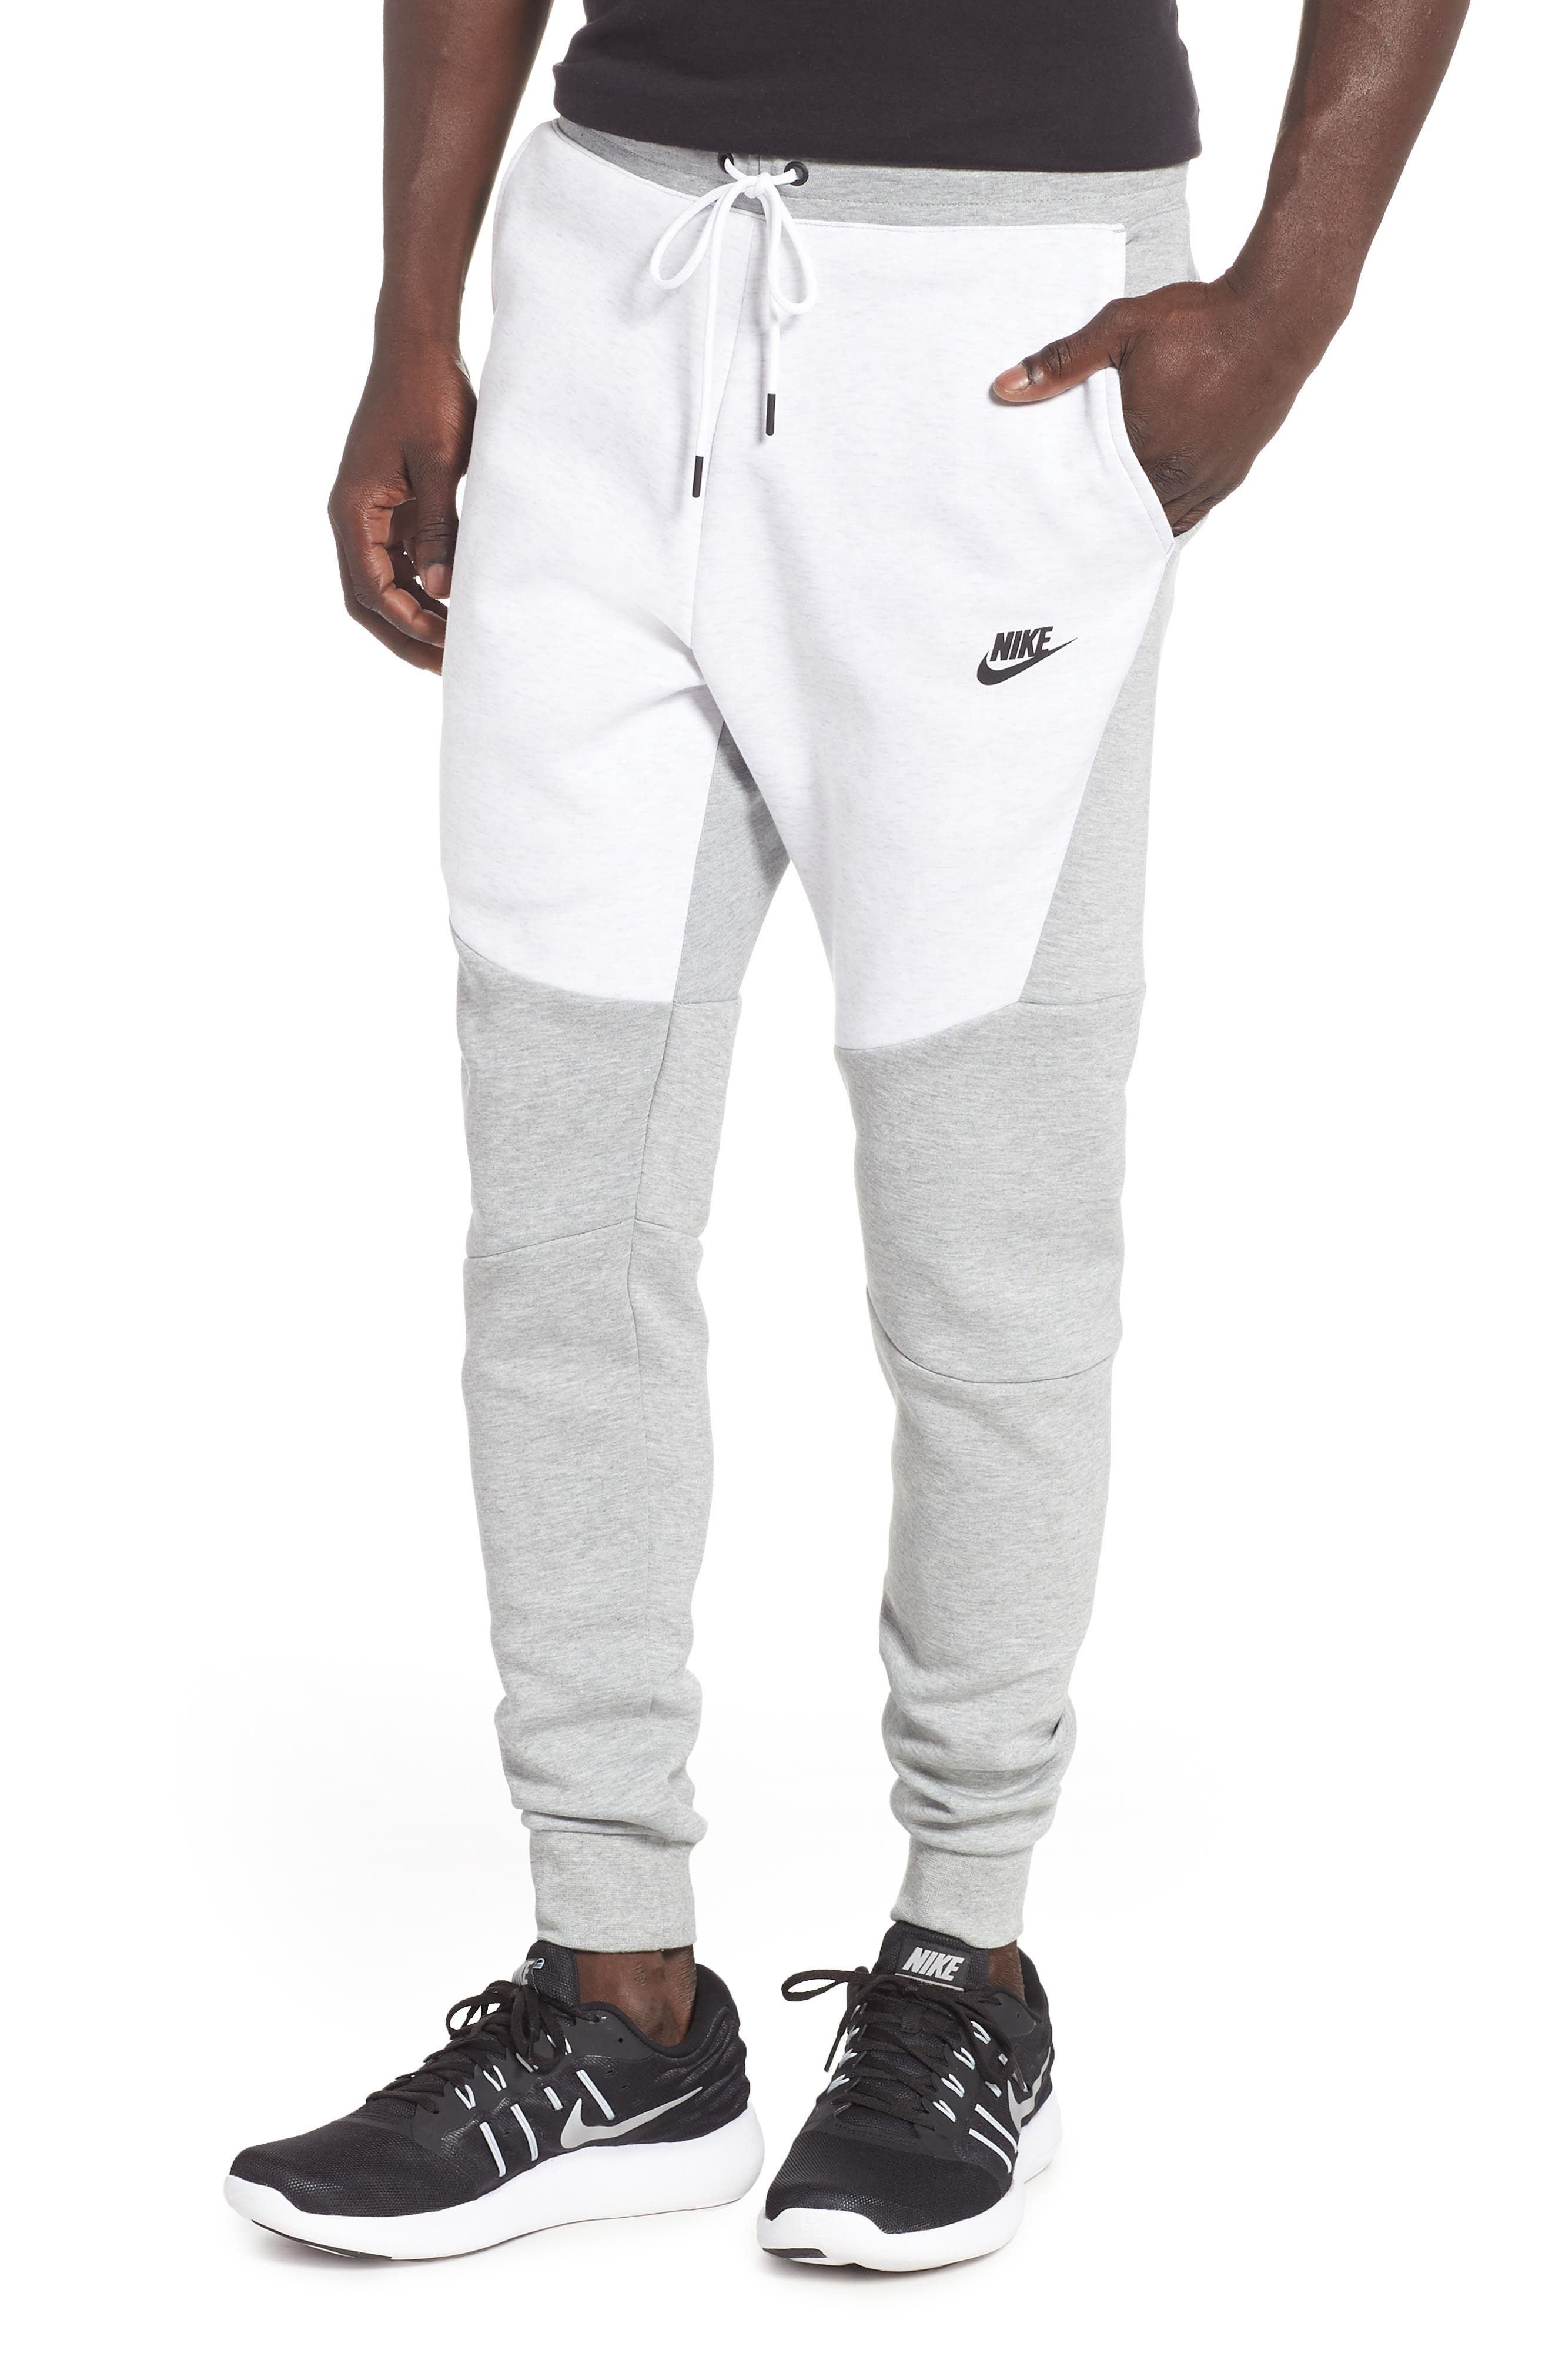 Tech Fleece Jogger Pants,                             Main thumbnail 1, color,                             HEATHER/ BIRCH HEATHER/ BLACK